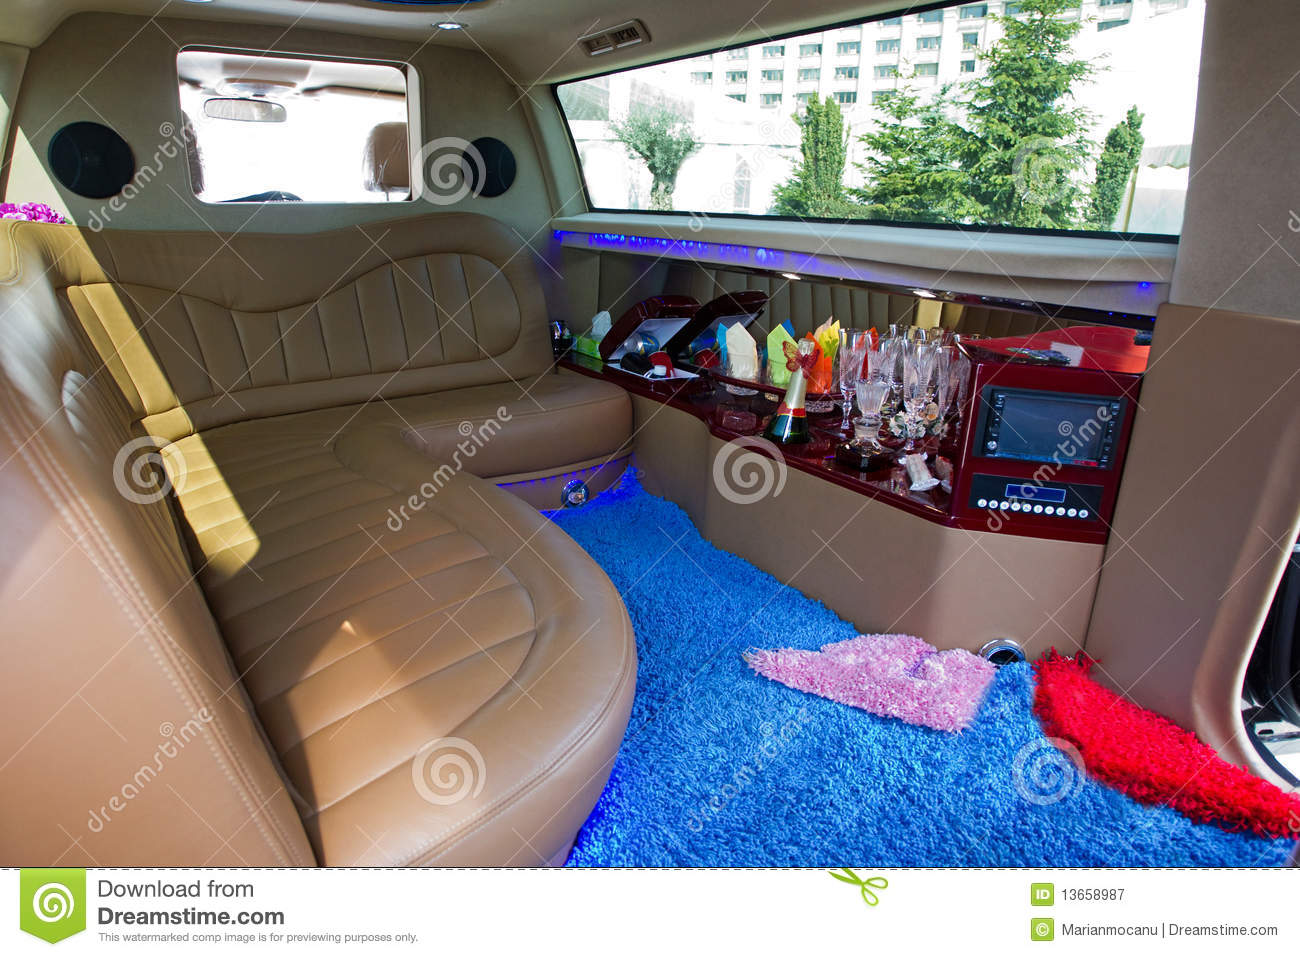 limousine interior stock image image of mini seat free 13658987. Black Bedroom Furniture Sets. Home Design Ideas